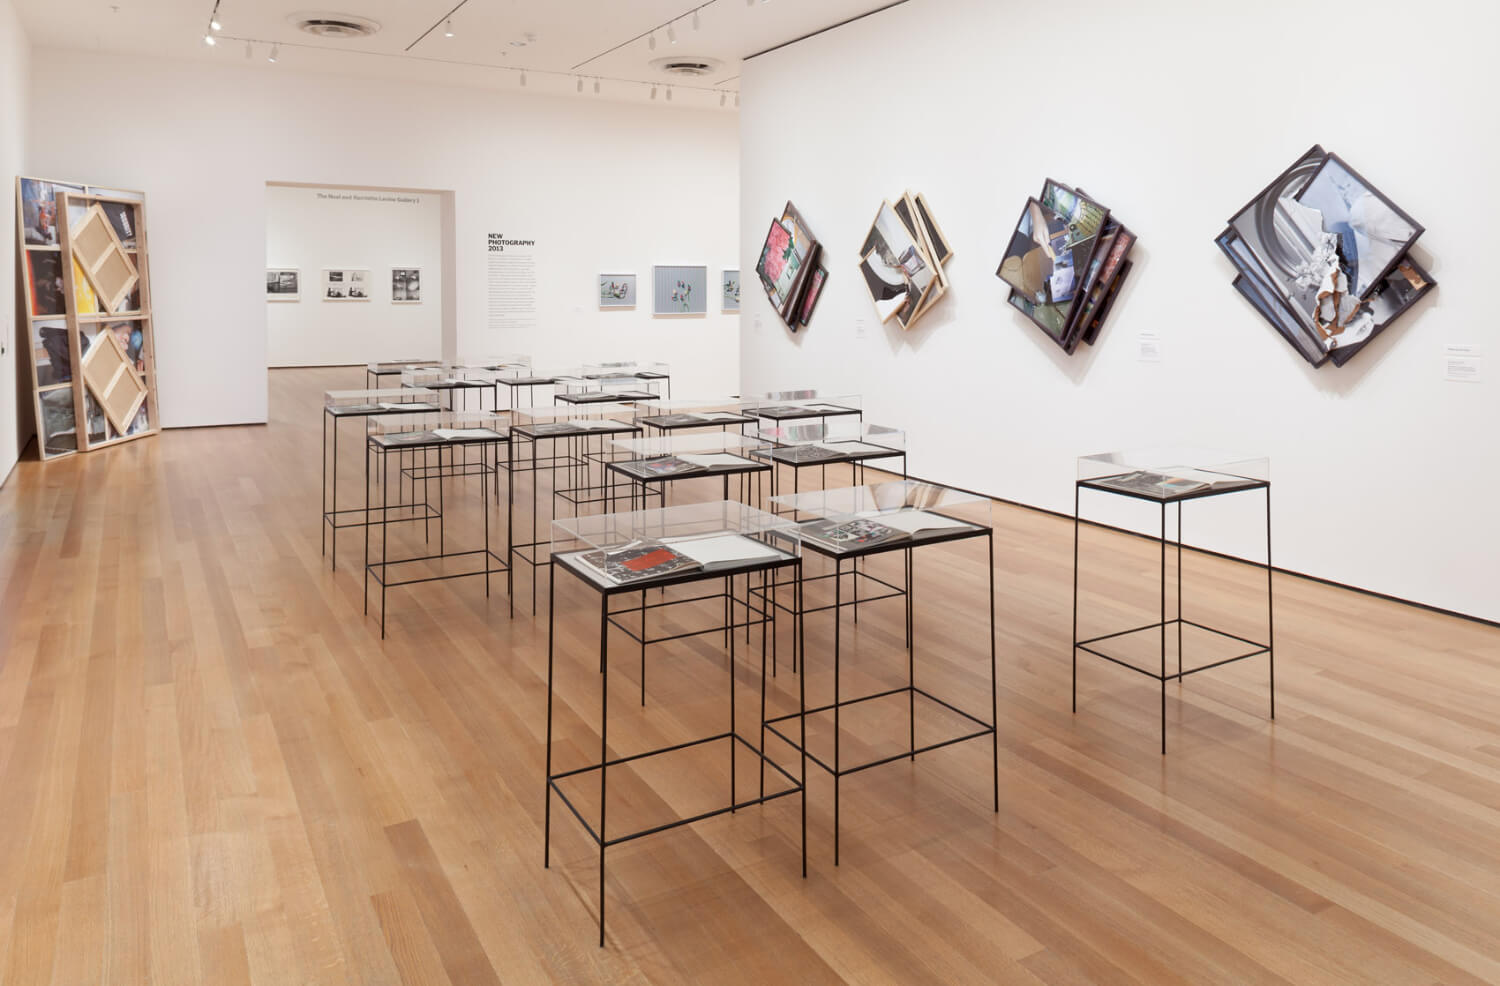 Installation view of the exhibition New Photography 2013. © 2013 The Museum of Modern Art, New York. Photograph by Thomas Griesel - 4.jpg